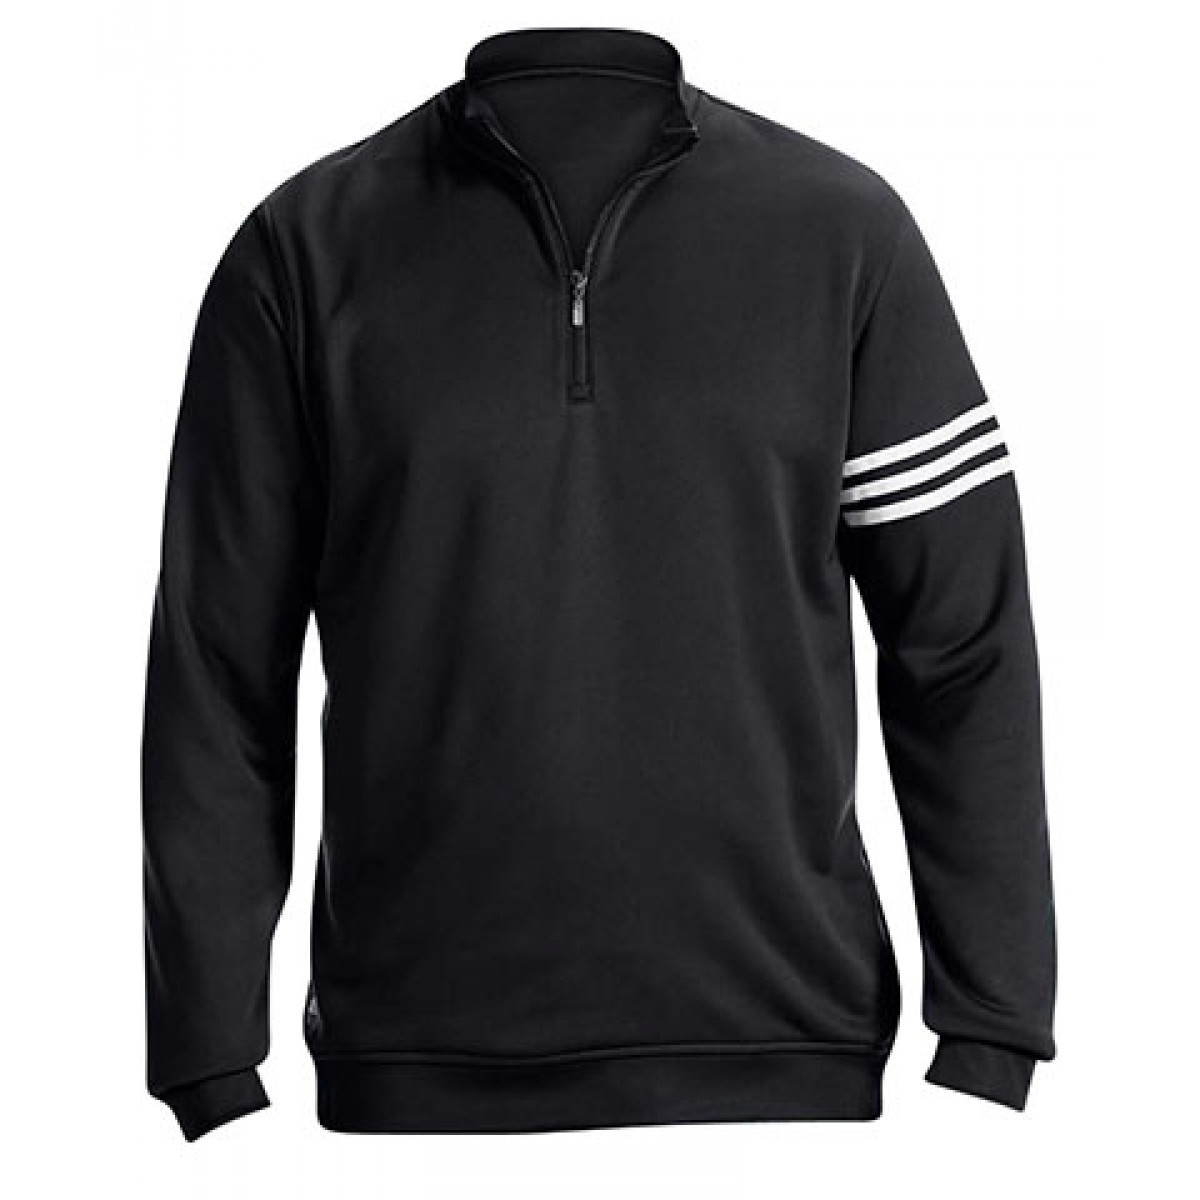 Adidas Golf Men's ClimaLite® 3-Stripes Pullover-Black-XL